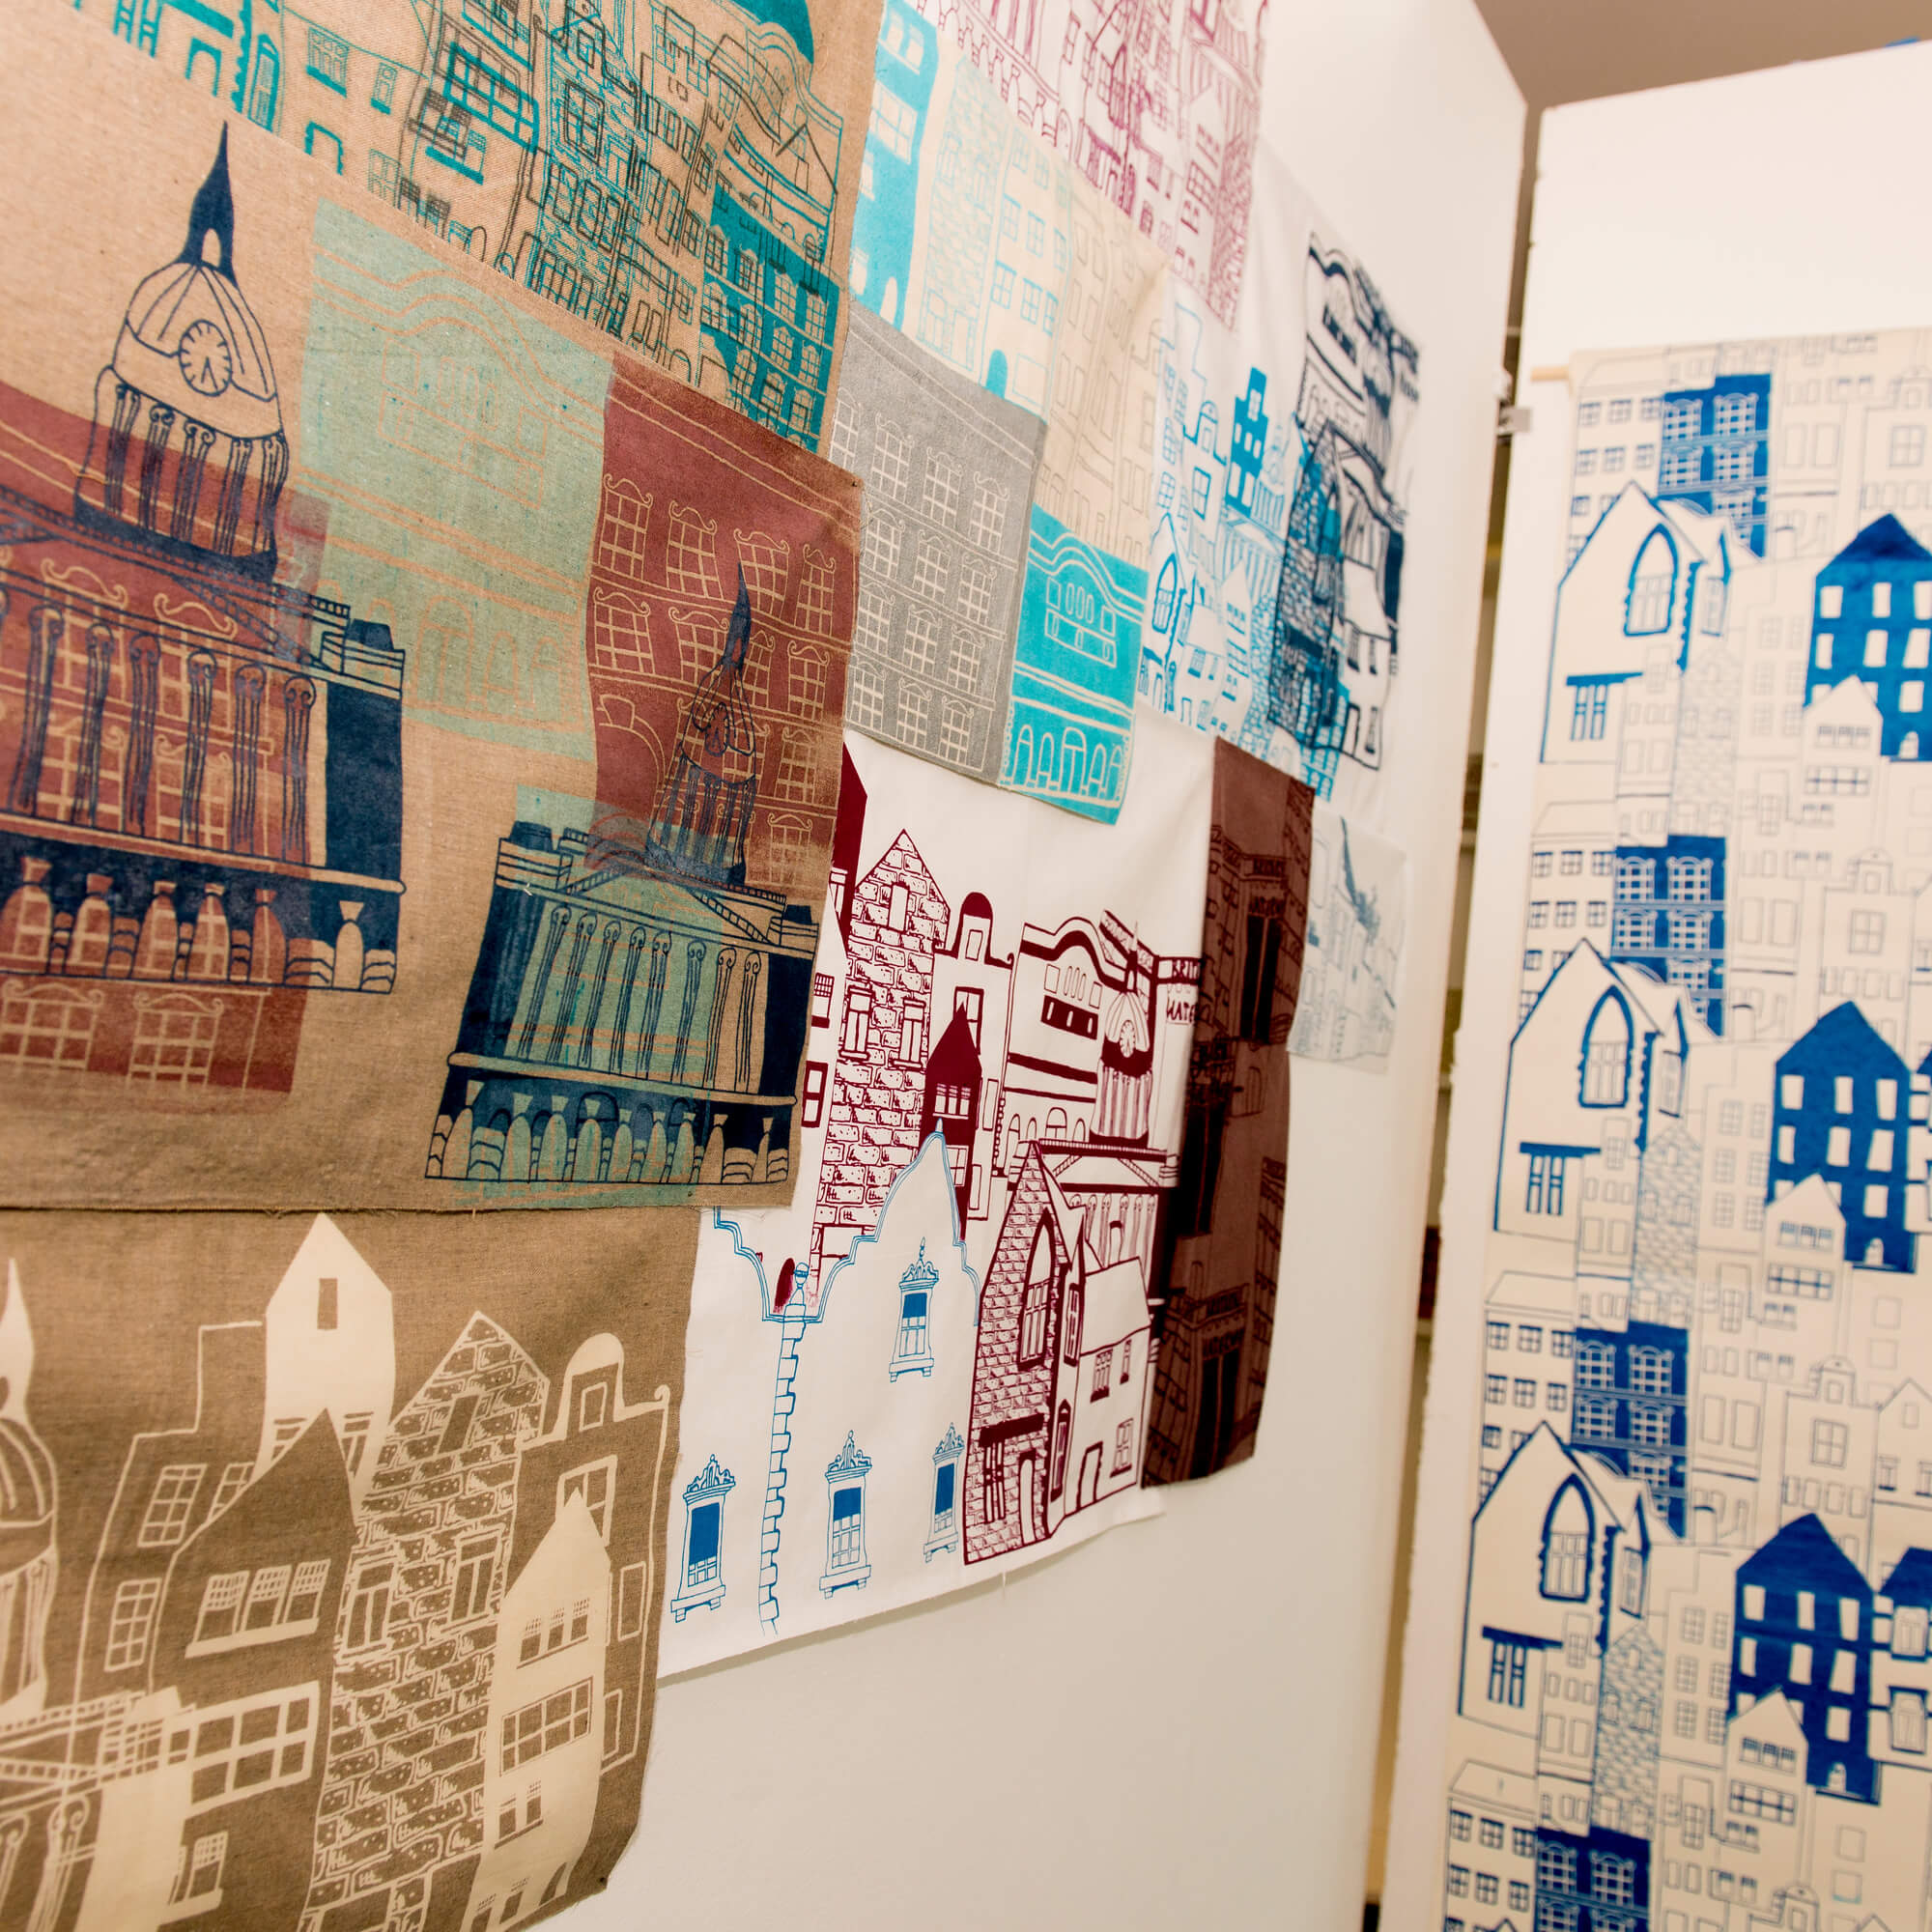 Illustrations and printed textiles of residential buildings